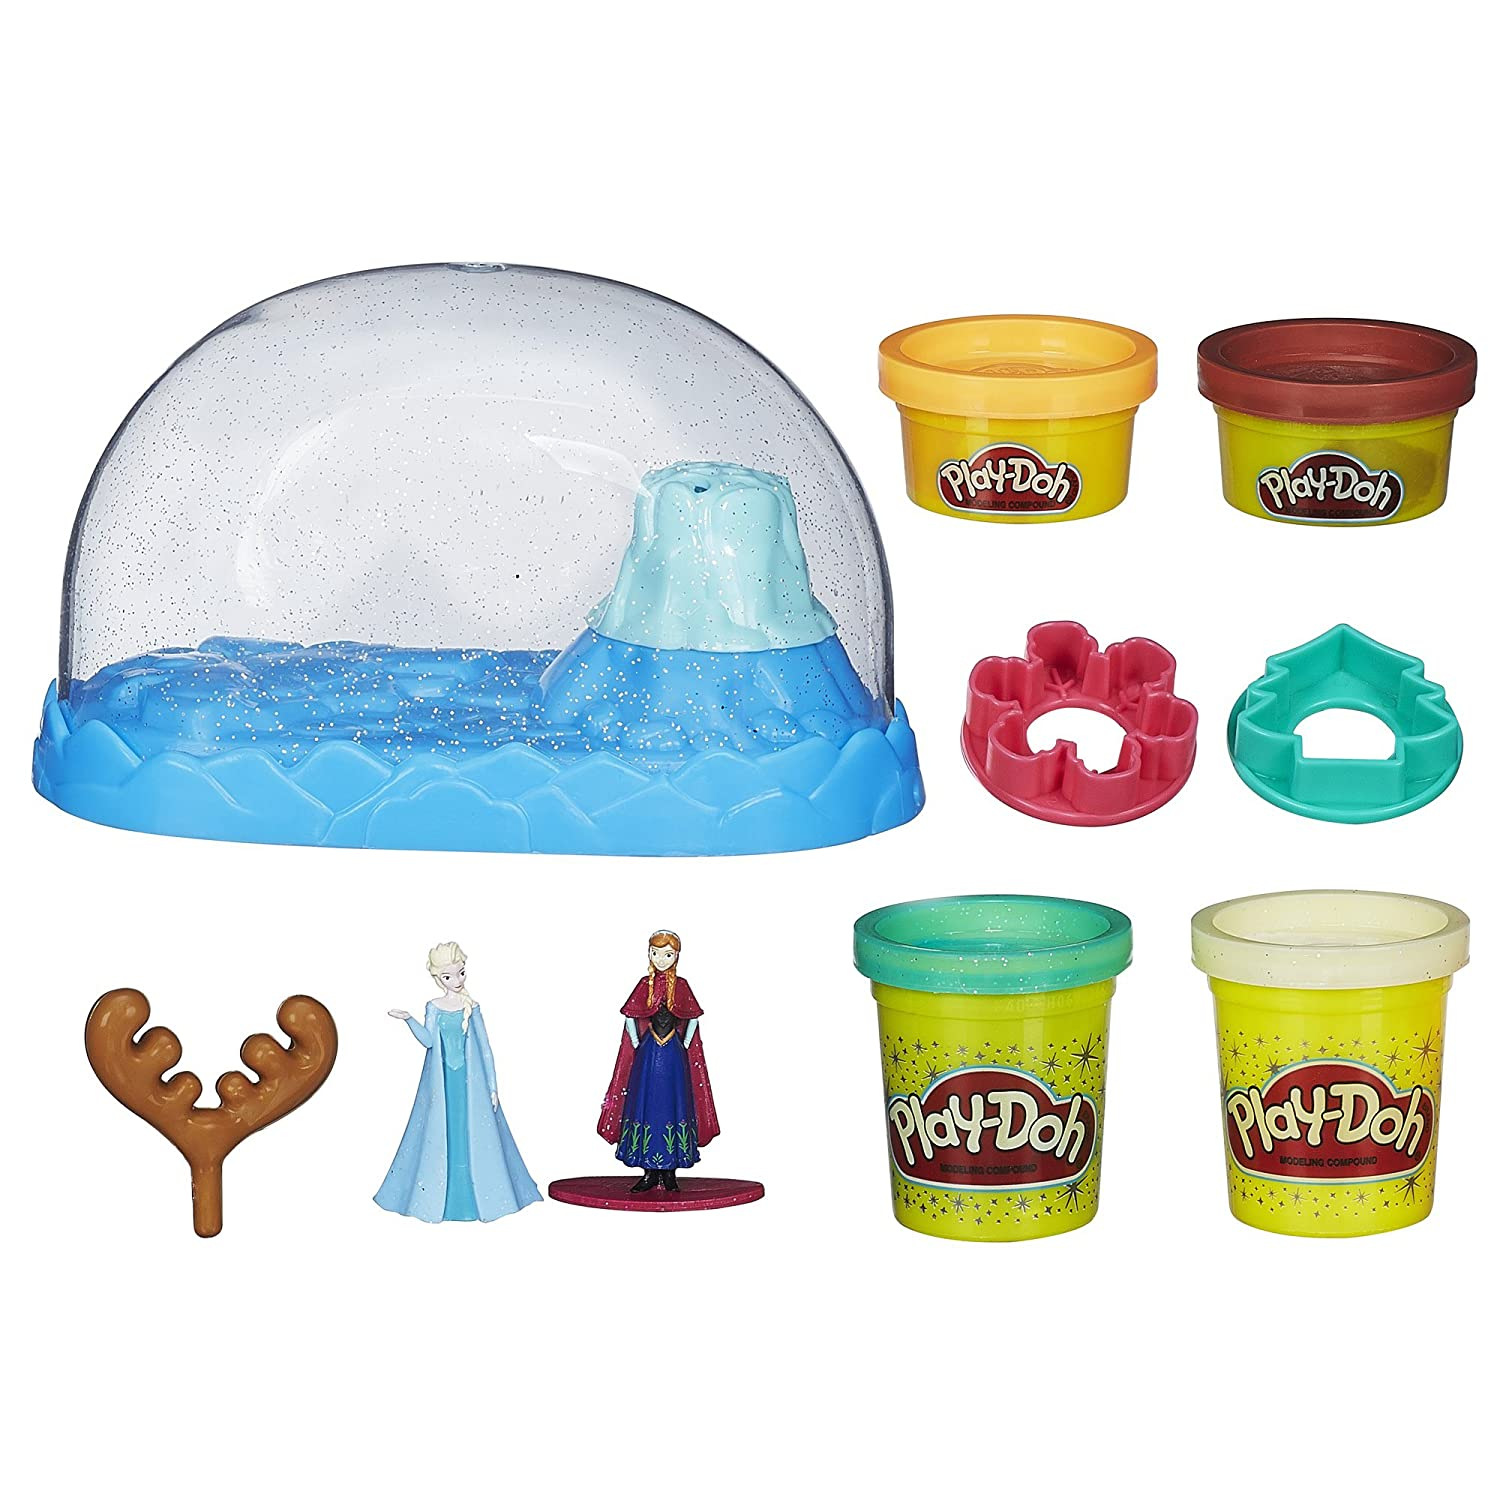 Play Doh Sparkle Snow Dome Set Featuring Disney's Frozen